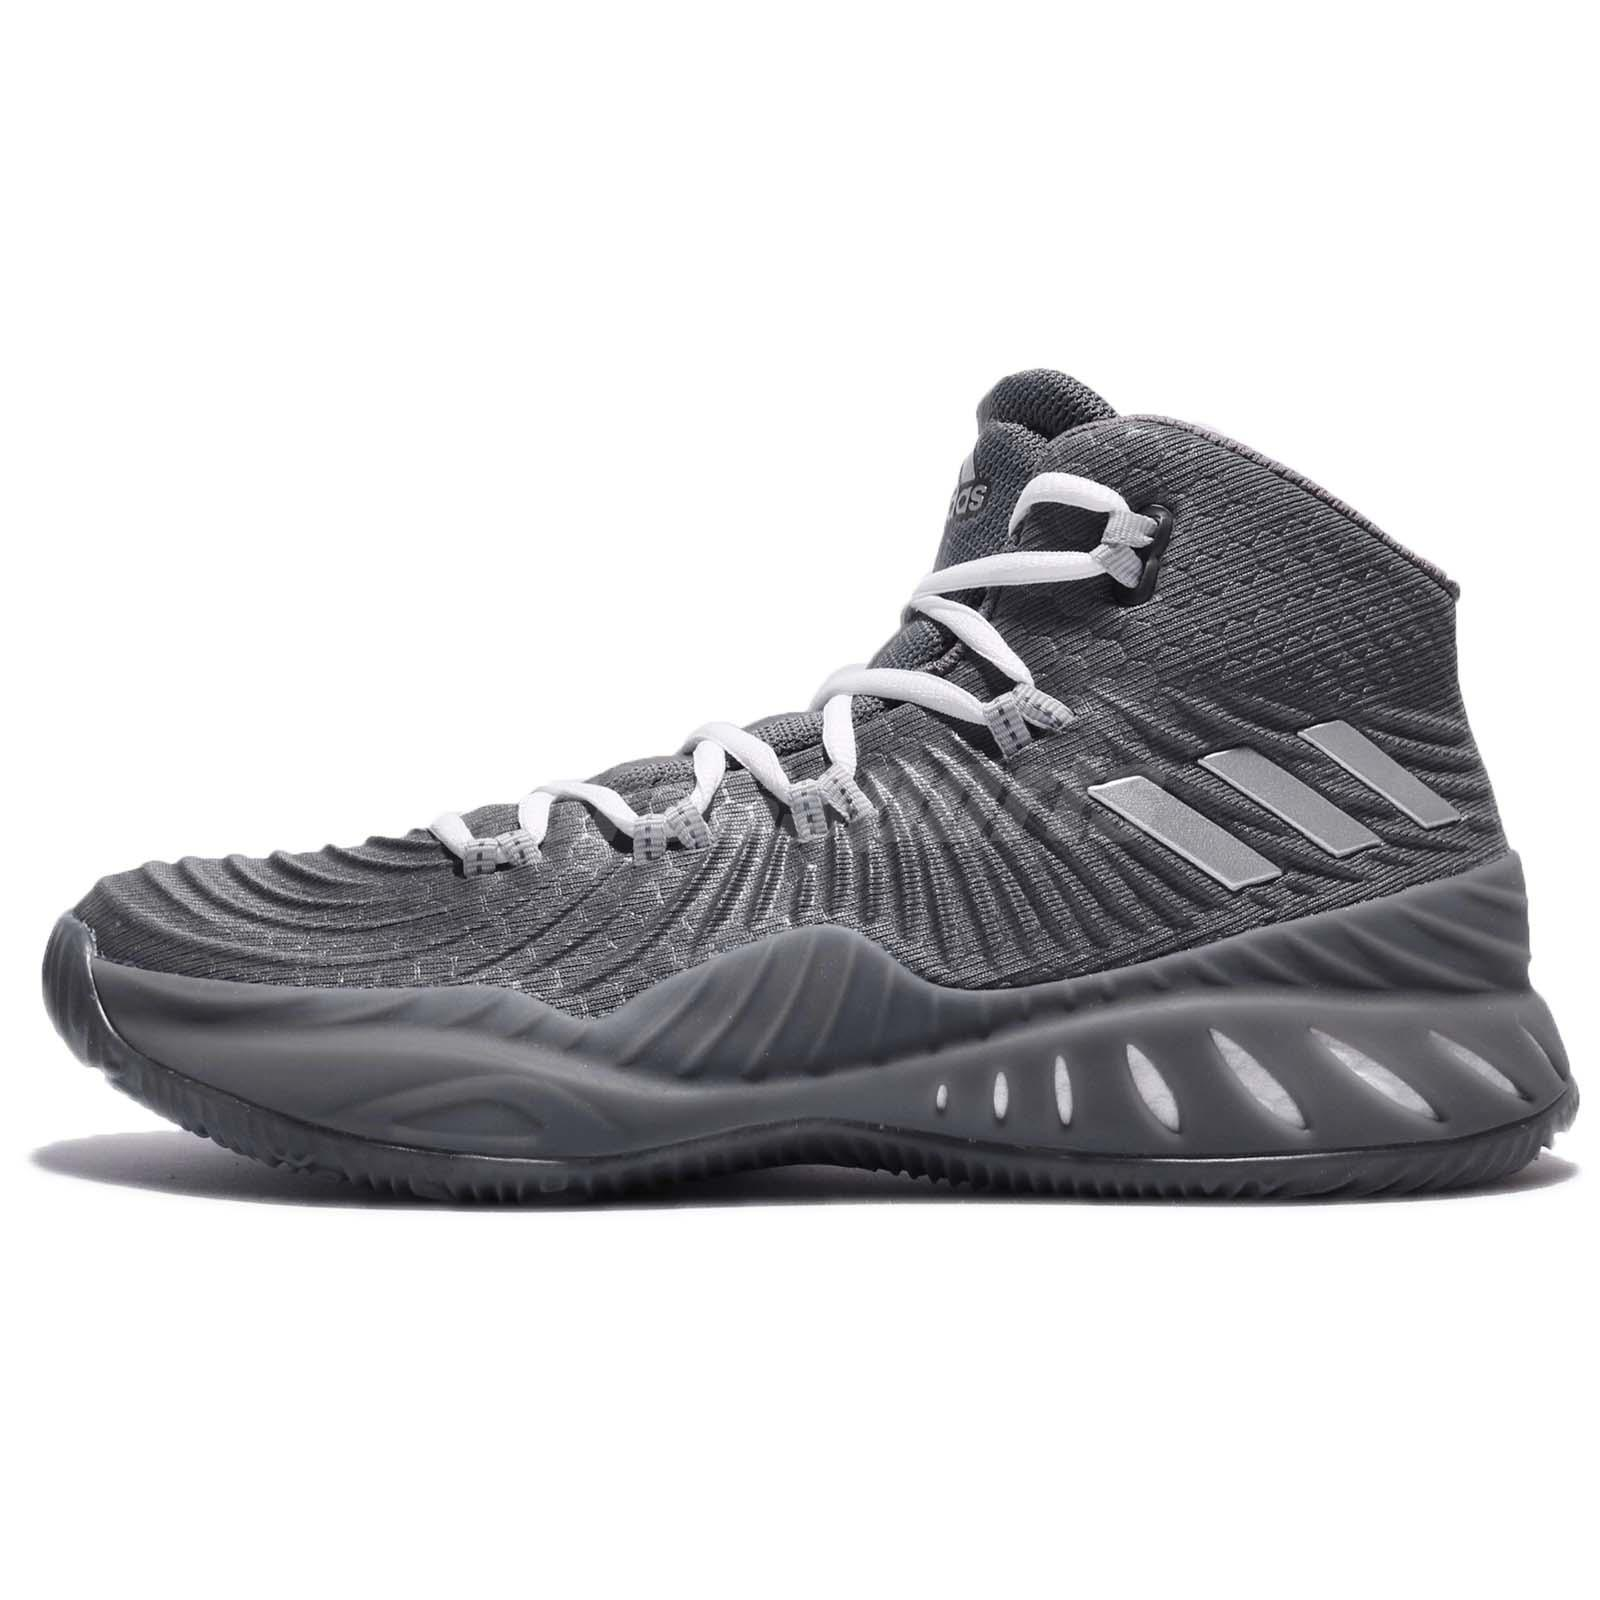 adidas Crazy Explosive 2017 BOOST Grey Men Basketball Shoes Sneakers BY3767